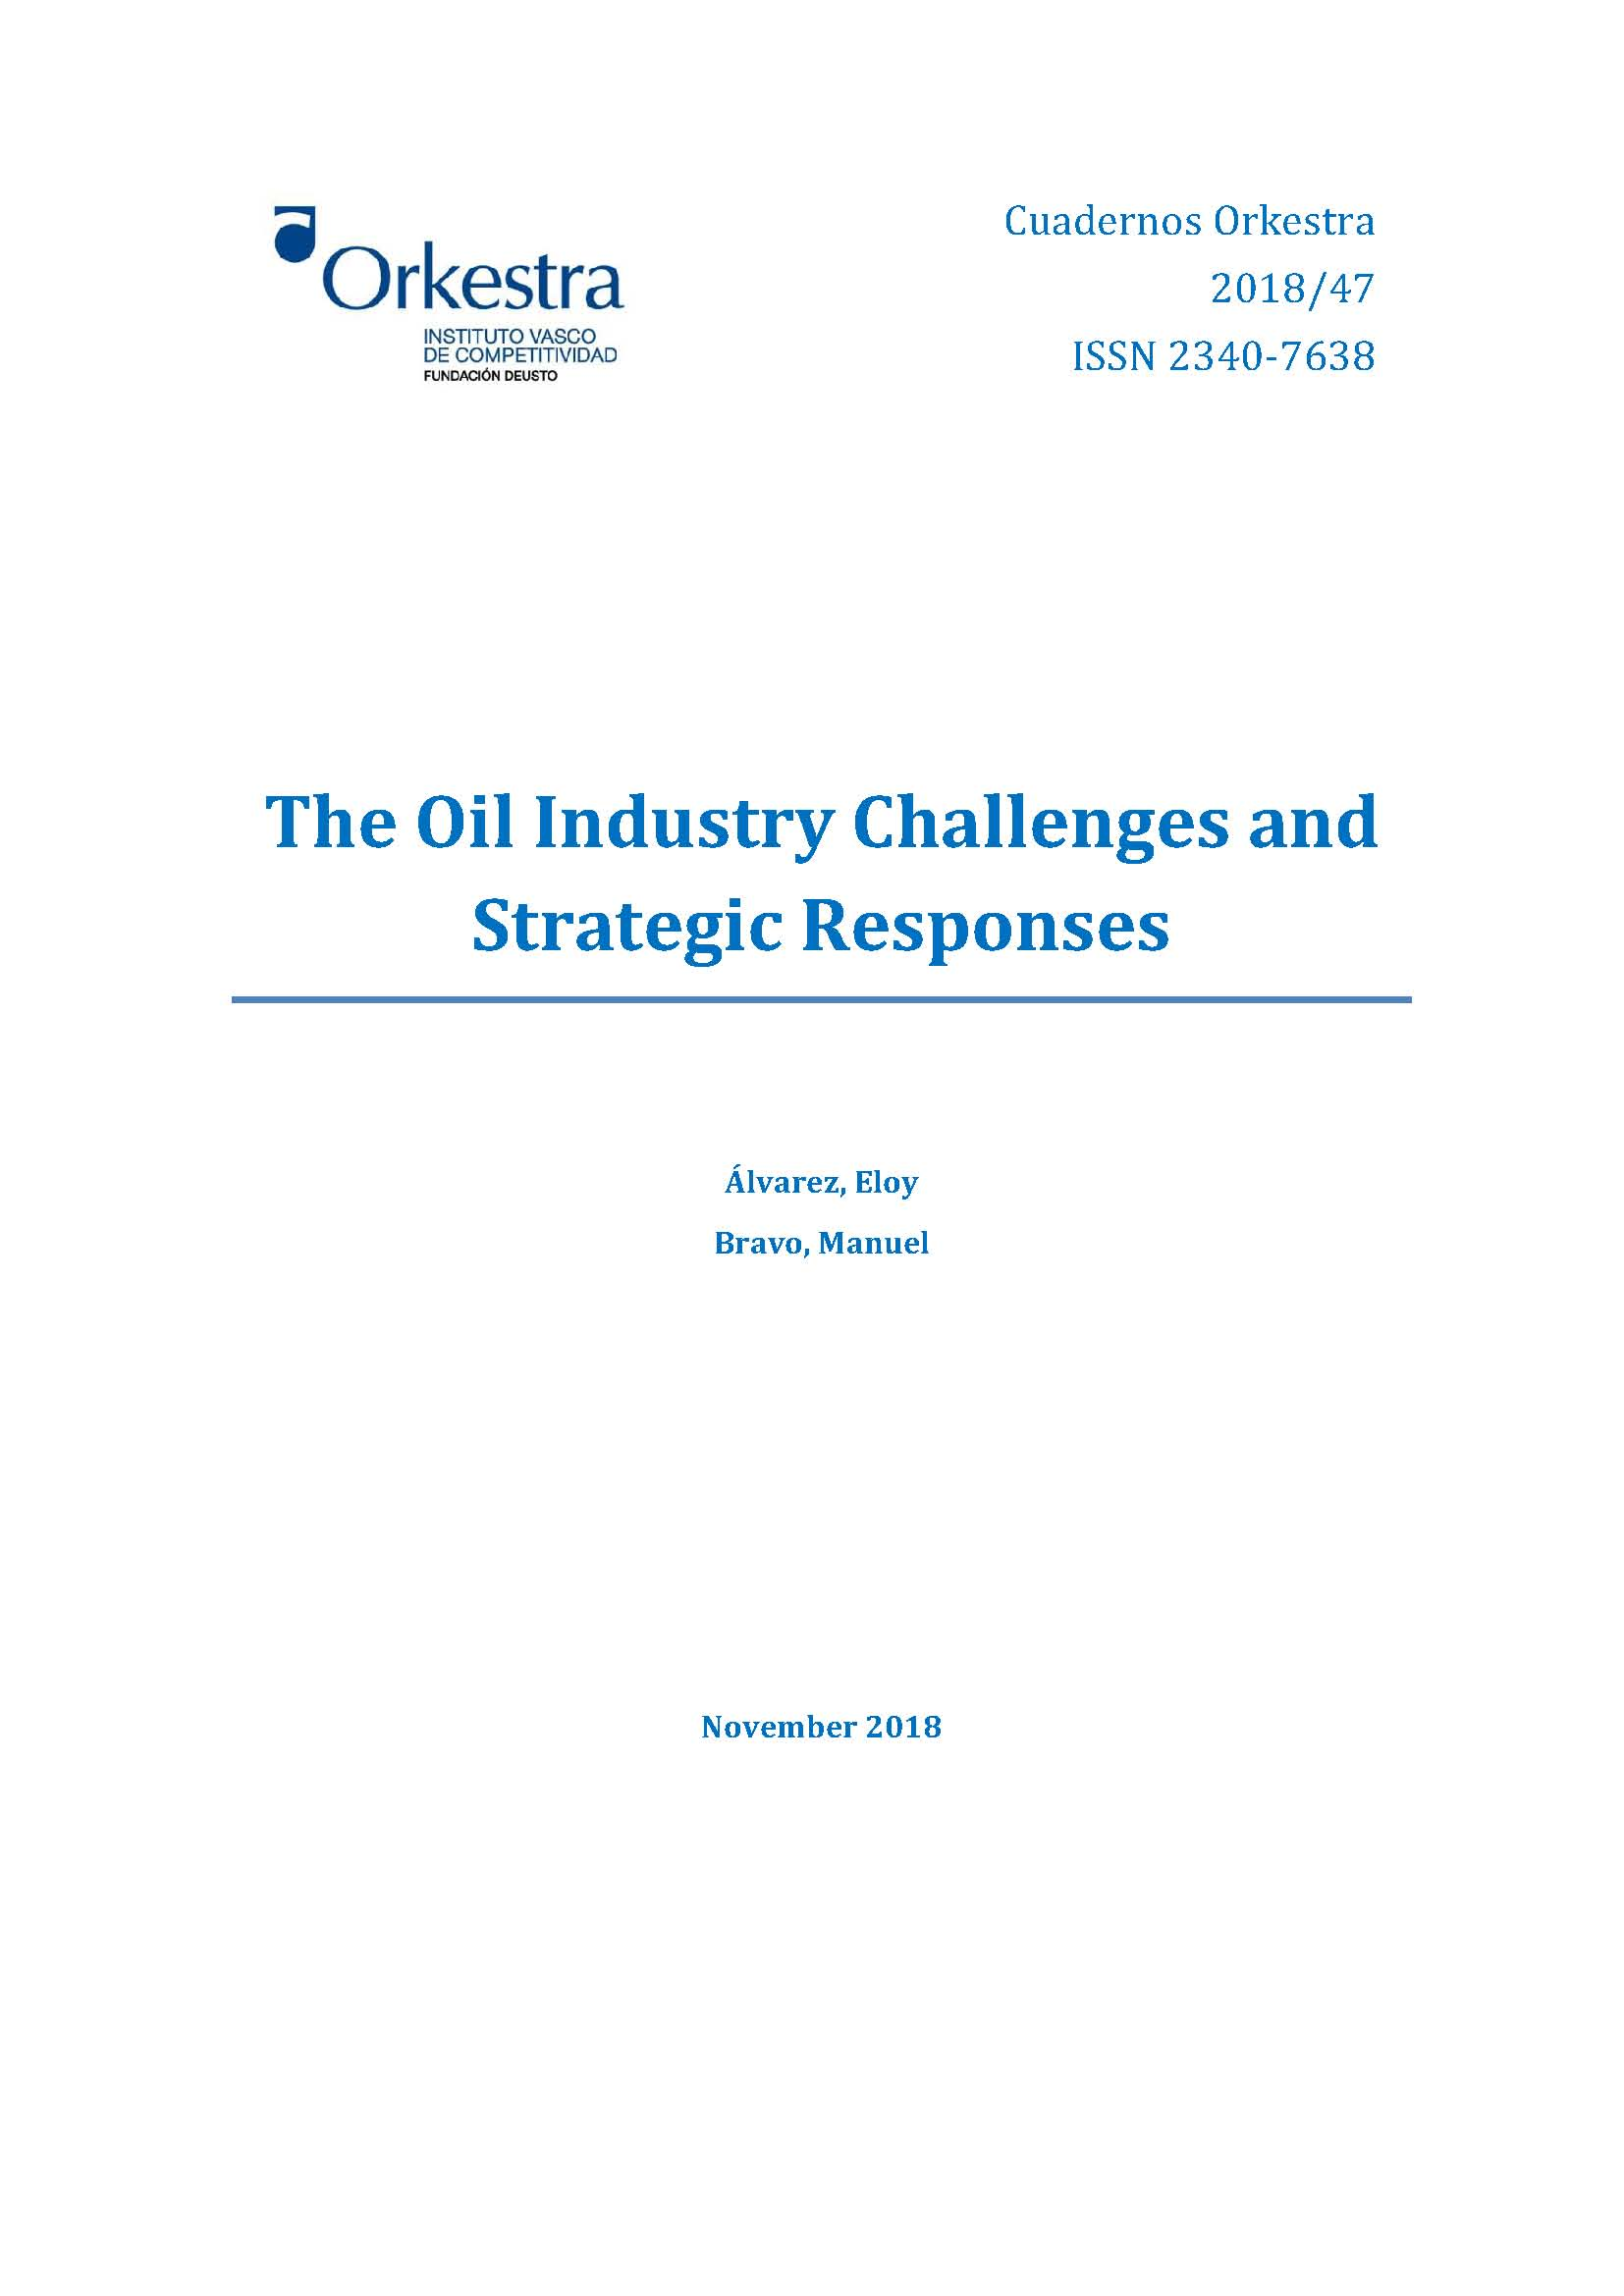 oil industry challenges strategic responses